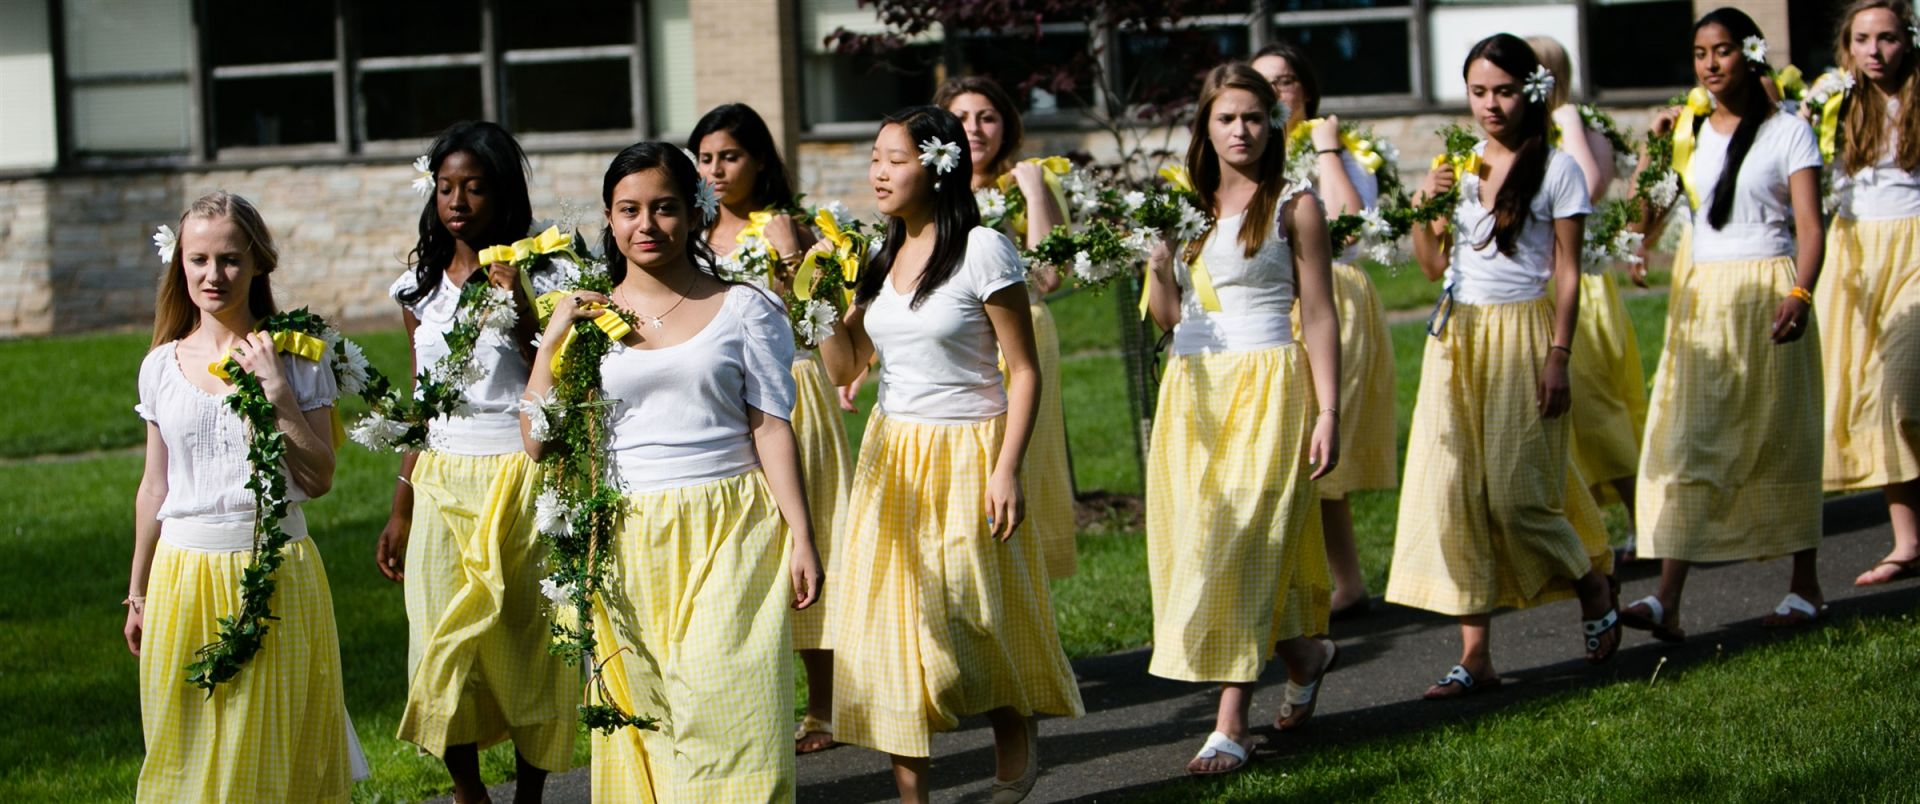 Daisy Chain during Commencement